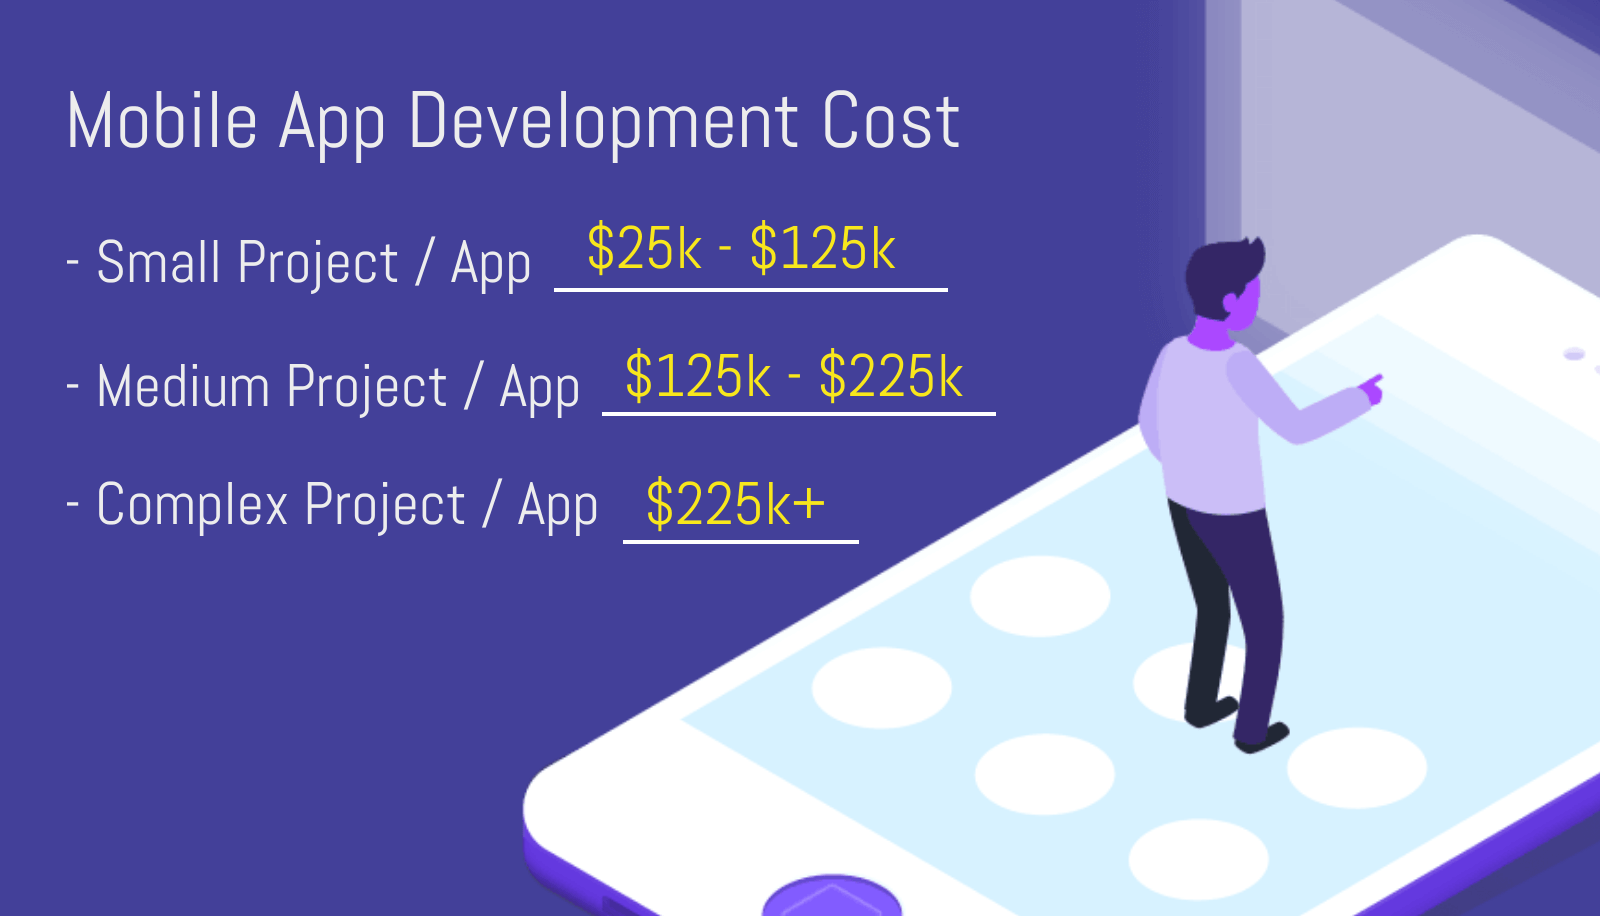 Mobile-App-Cost-by-Size